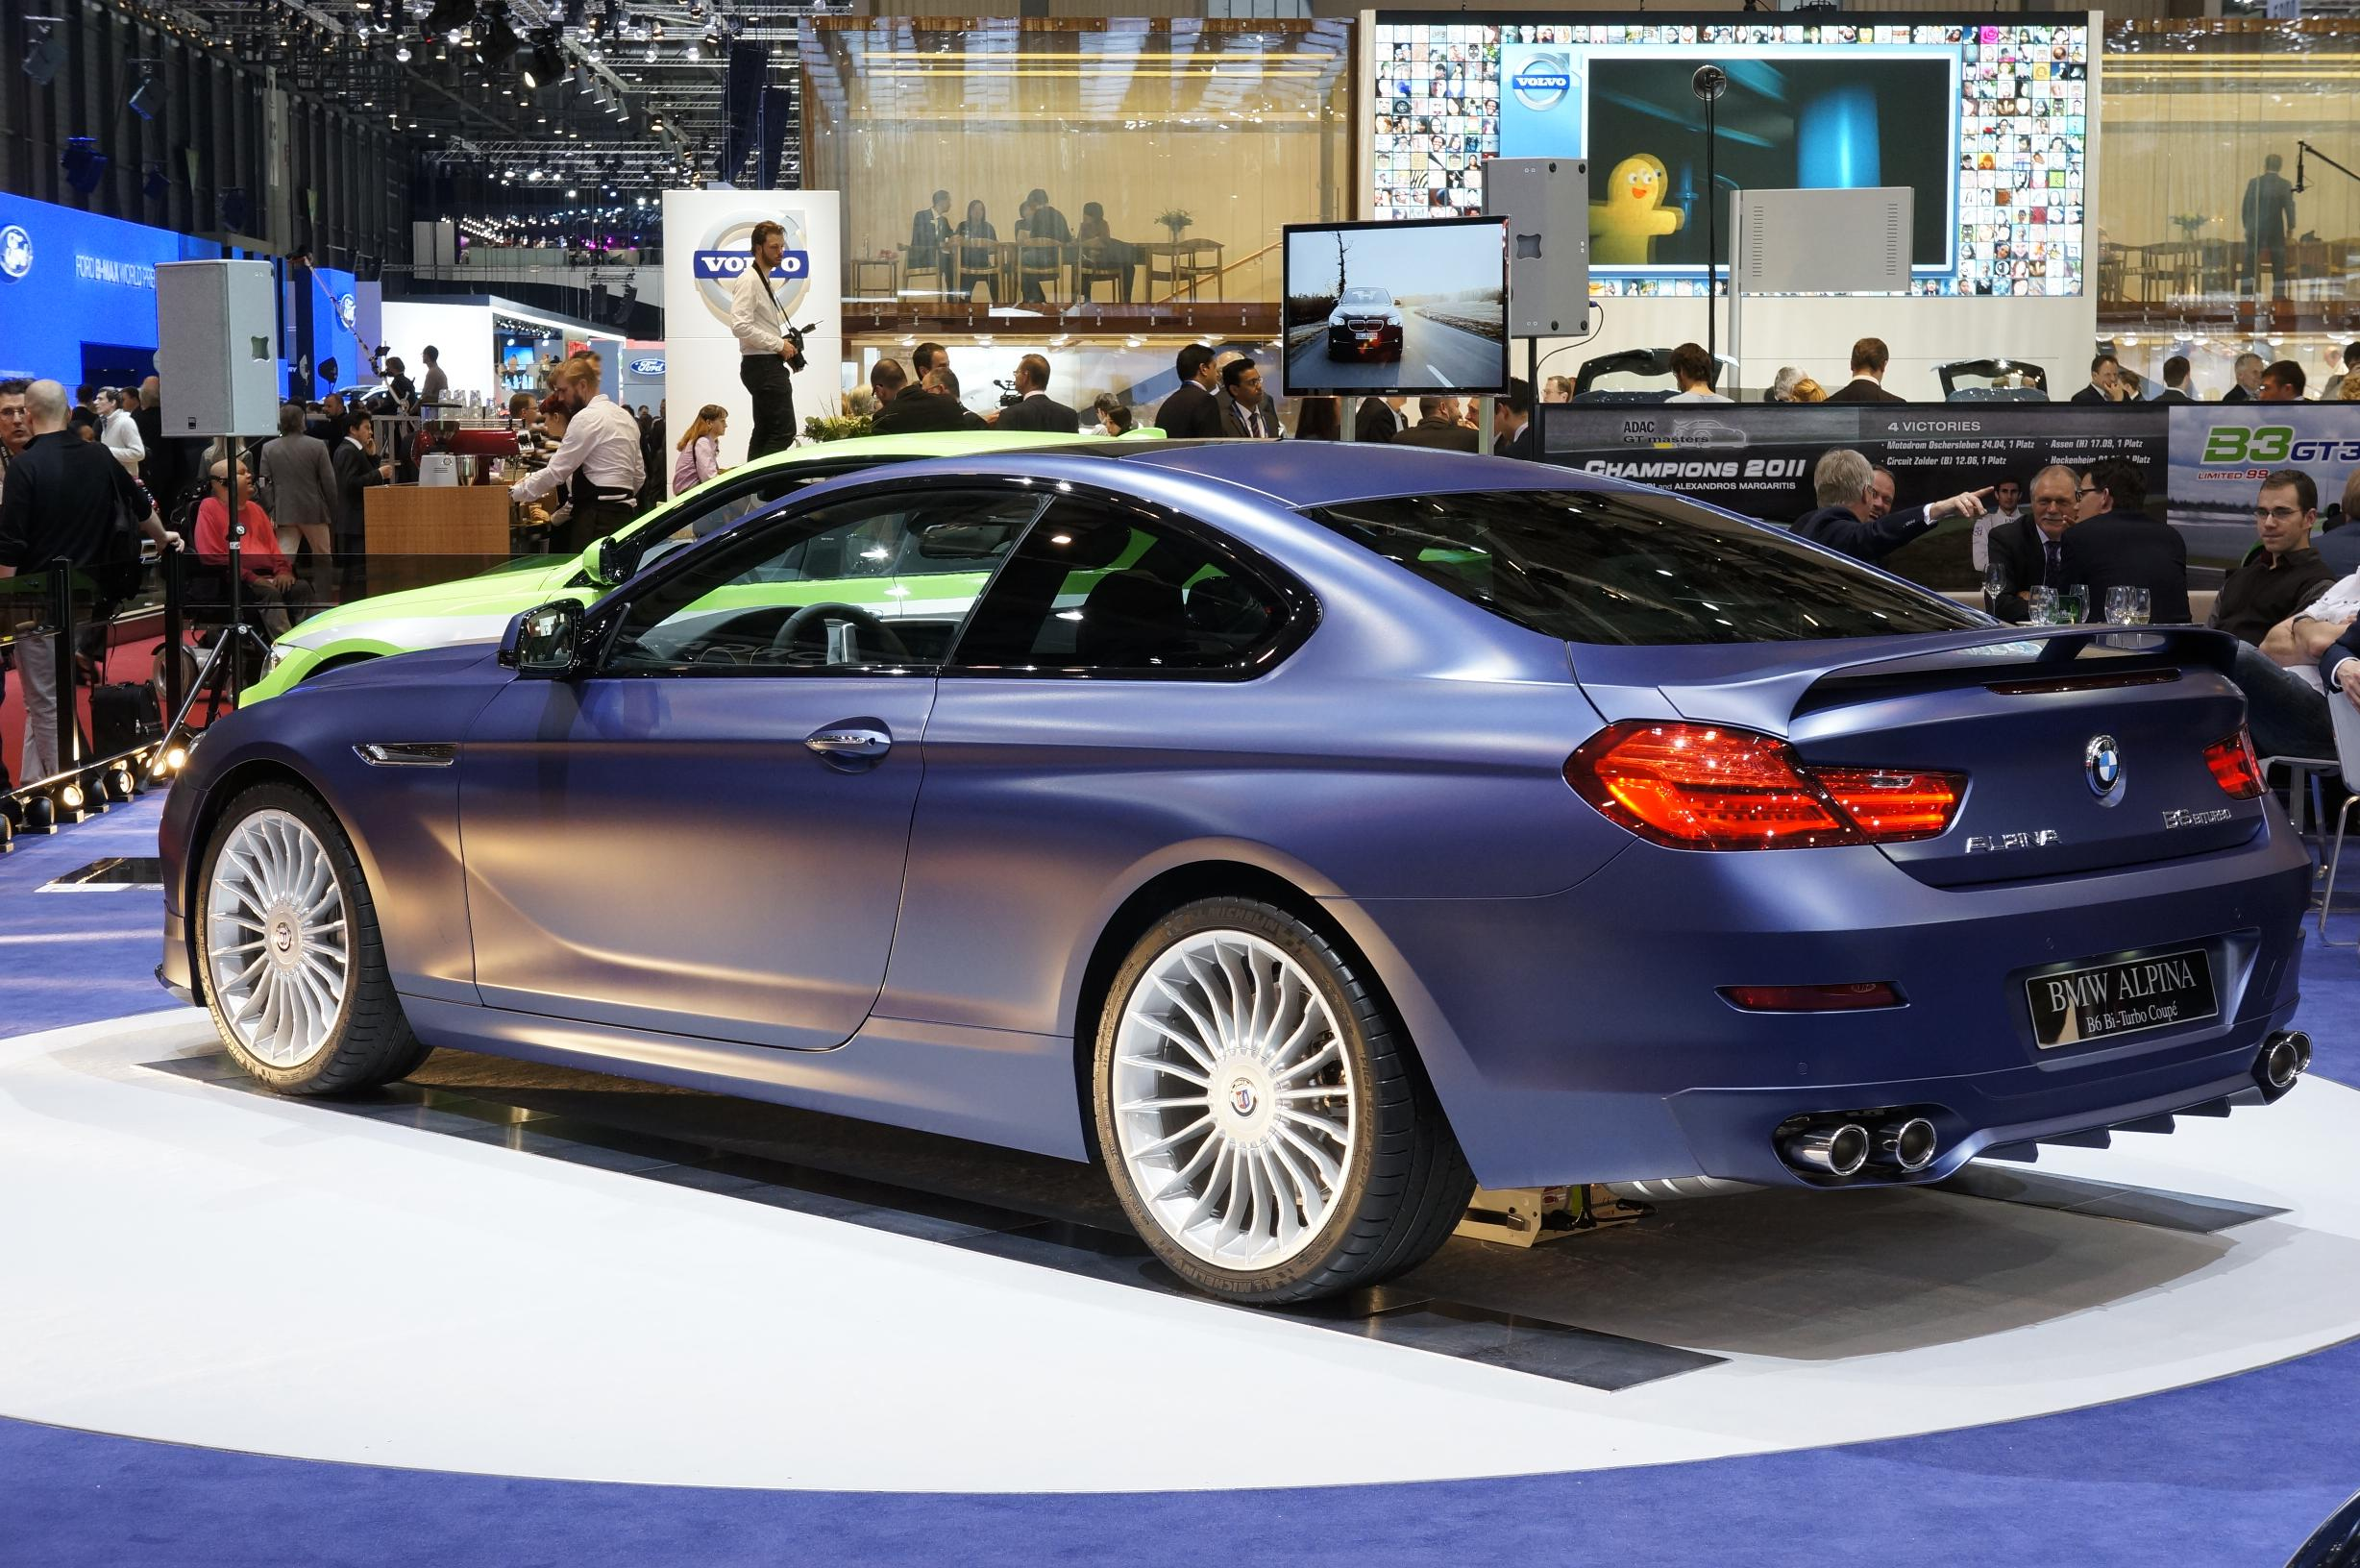 Alpina BMW B6 Bi-Turbo Coupe Geneva 2012 Rear